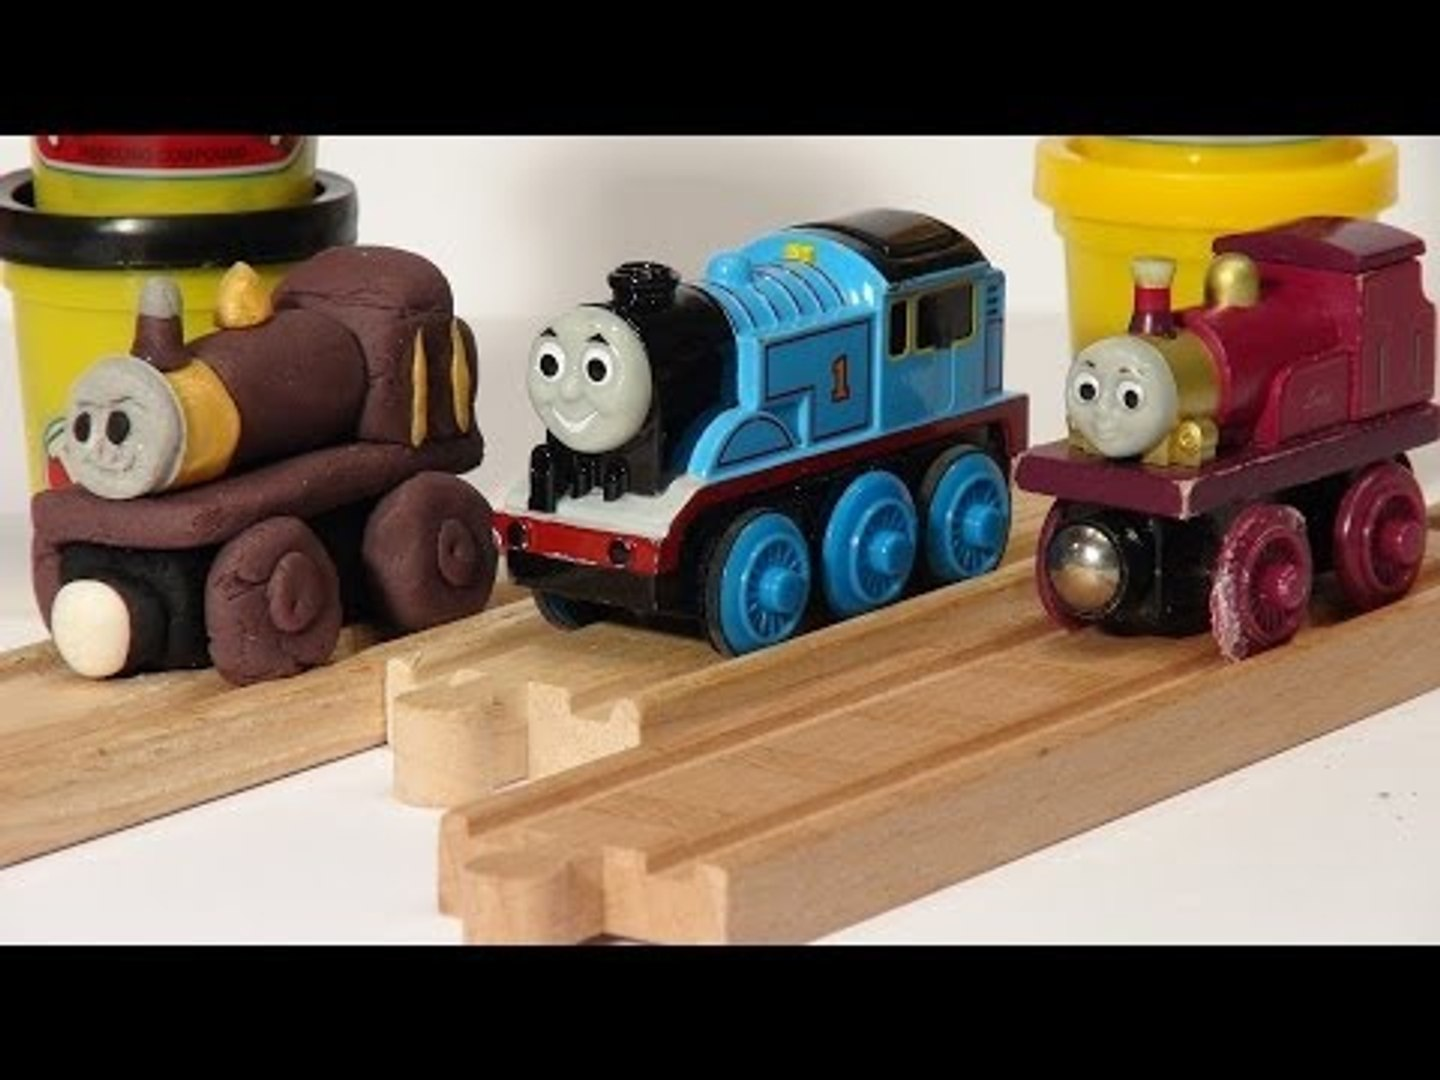 Play Doh Thomas and Friends we make Lady from Play Doh, Lady from the Magic Railway